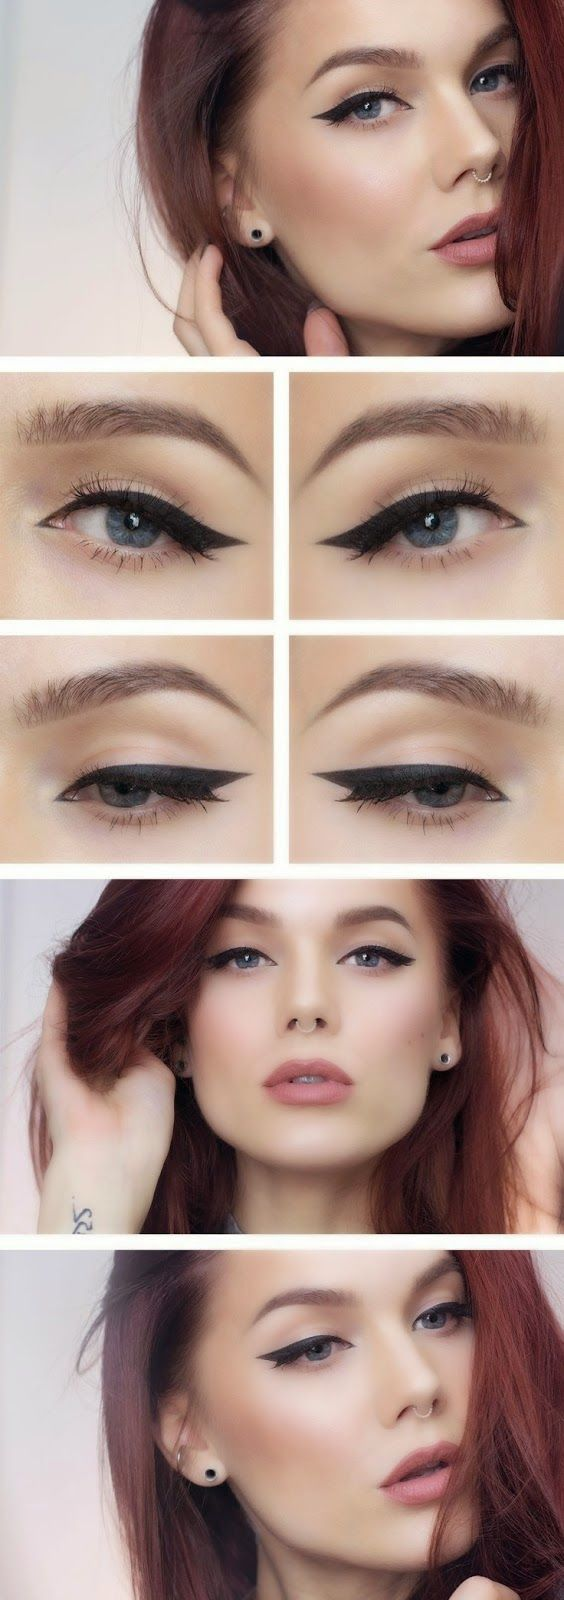 Makeup ideas!